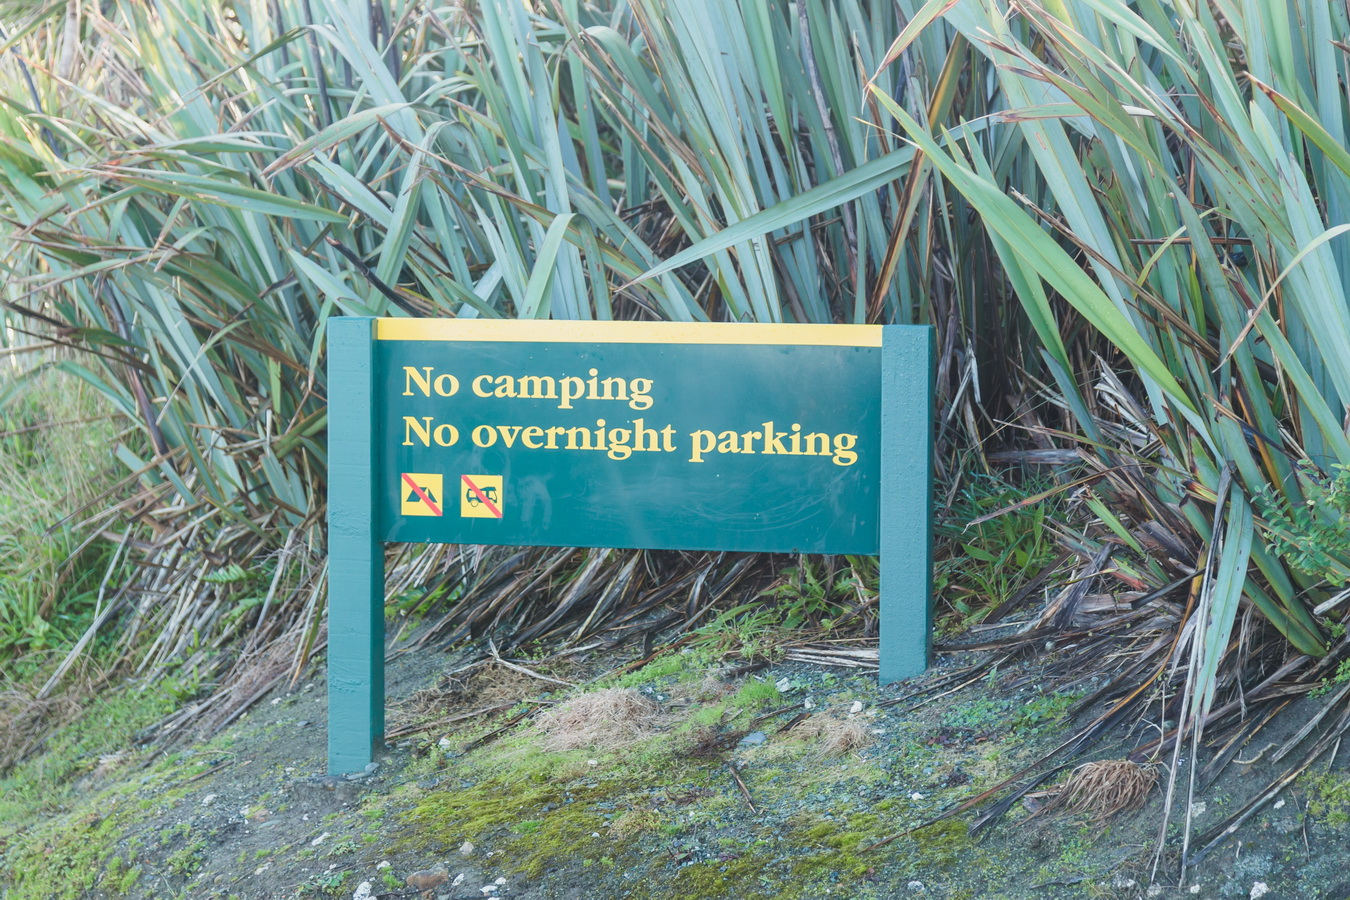 No camping, No overnight parking,car sign, rest,parking, new Zealand